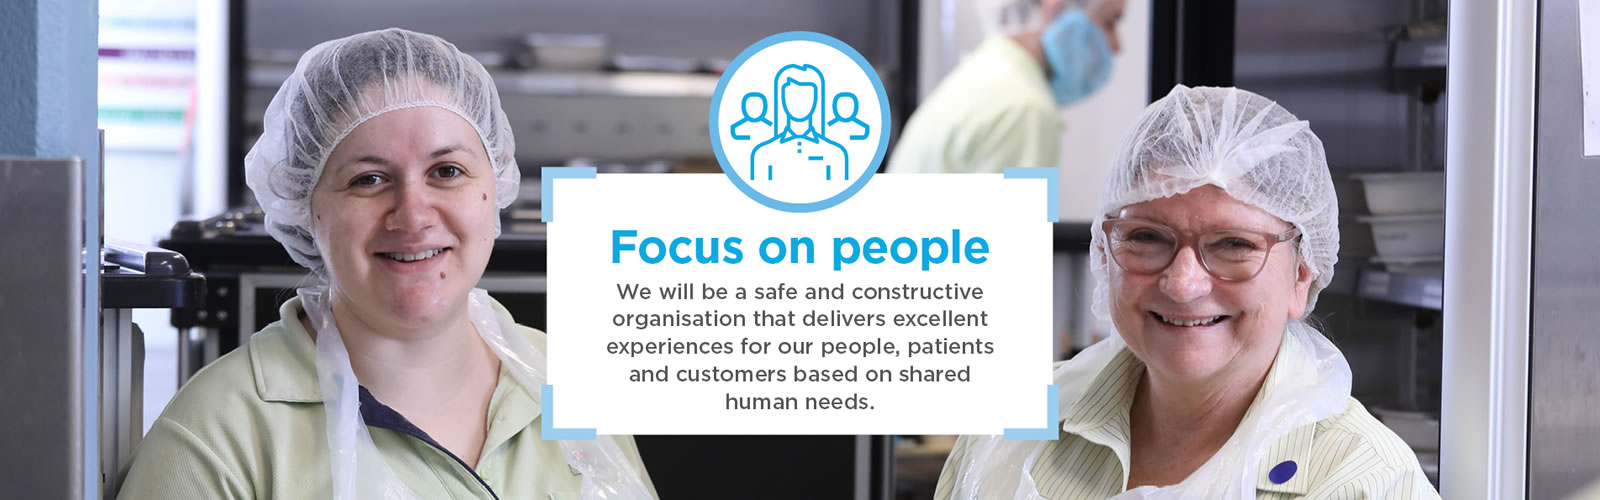 Focus on people. We will be a safe and constructive organisation that delivers excellent experiences for our people, patients and customers based on shared human needs.